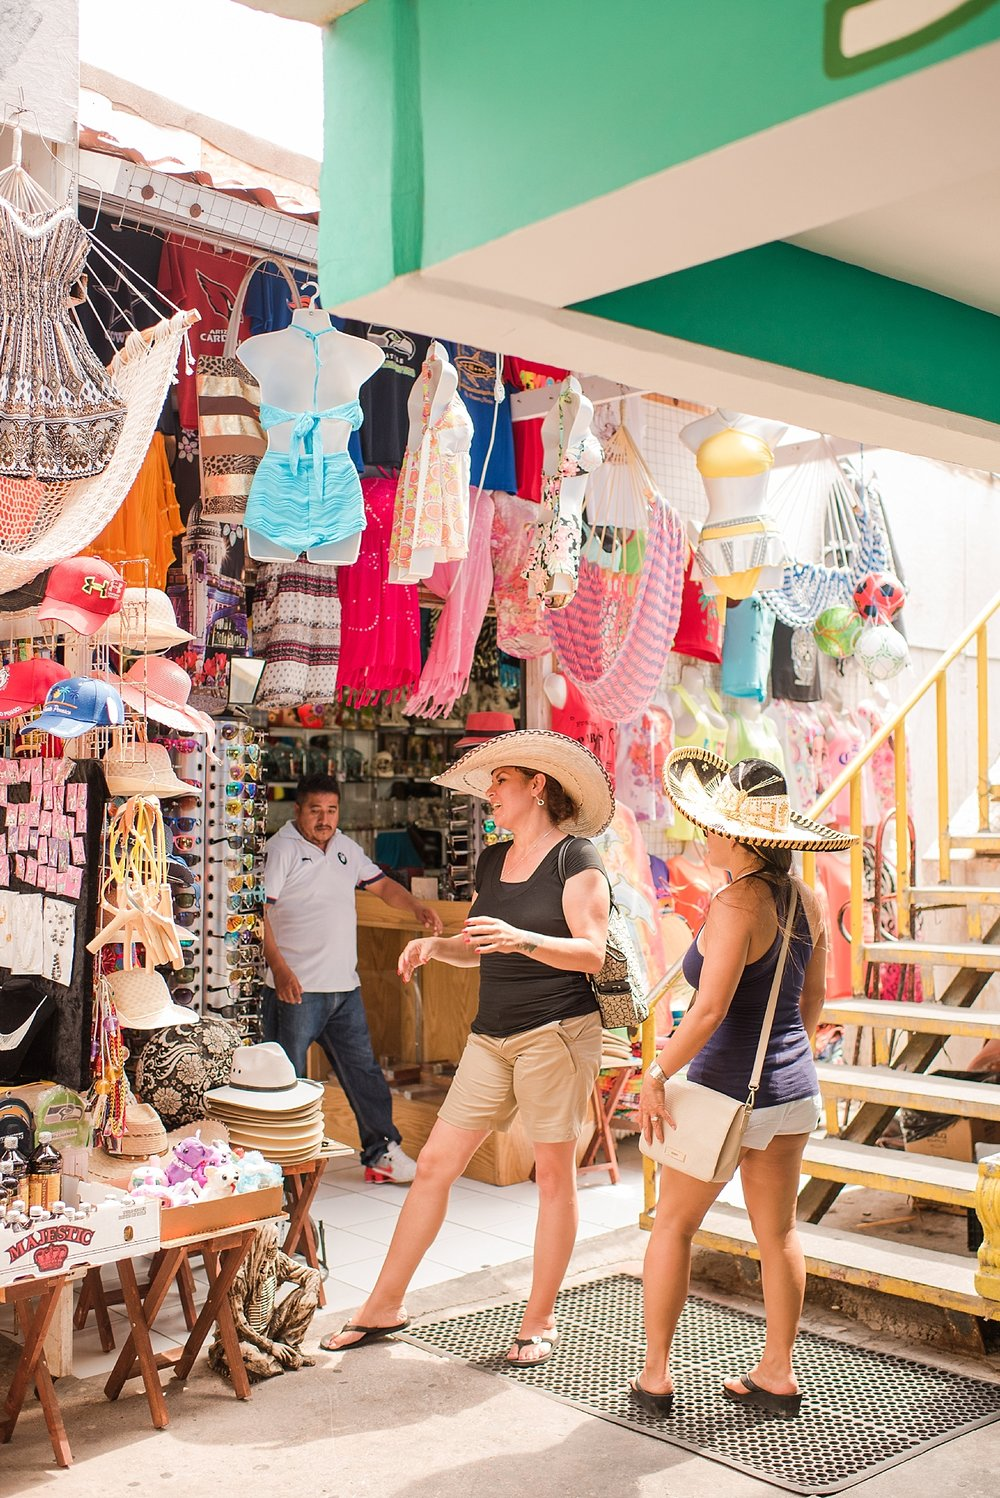 Picture of one of the shopping stalls during our trip to Rocky Point, Mexico in June 2017. Travel photos by Jade Min Photography.